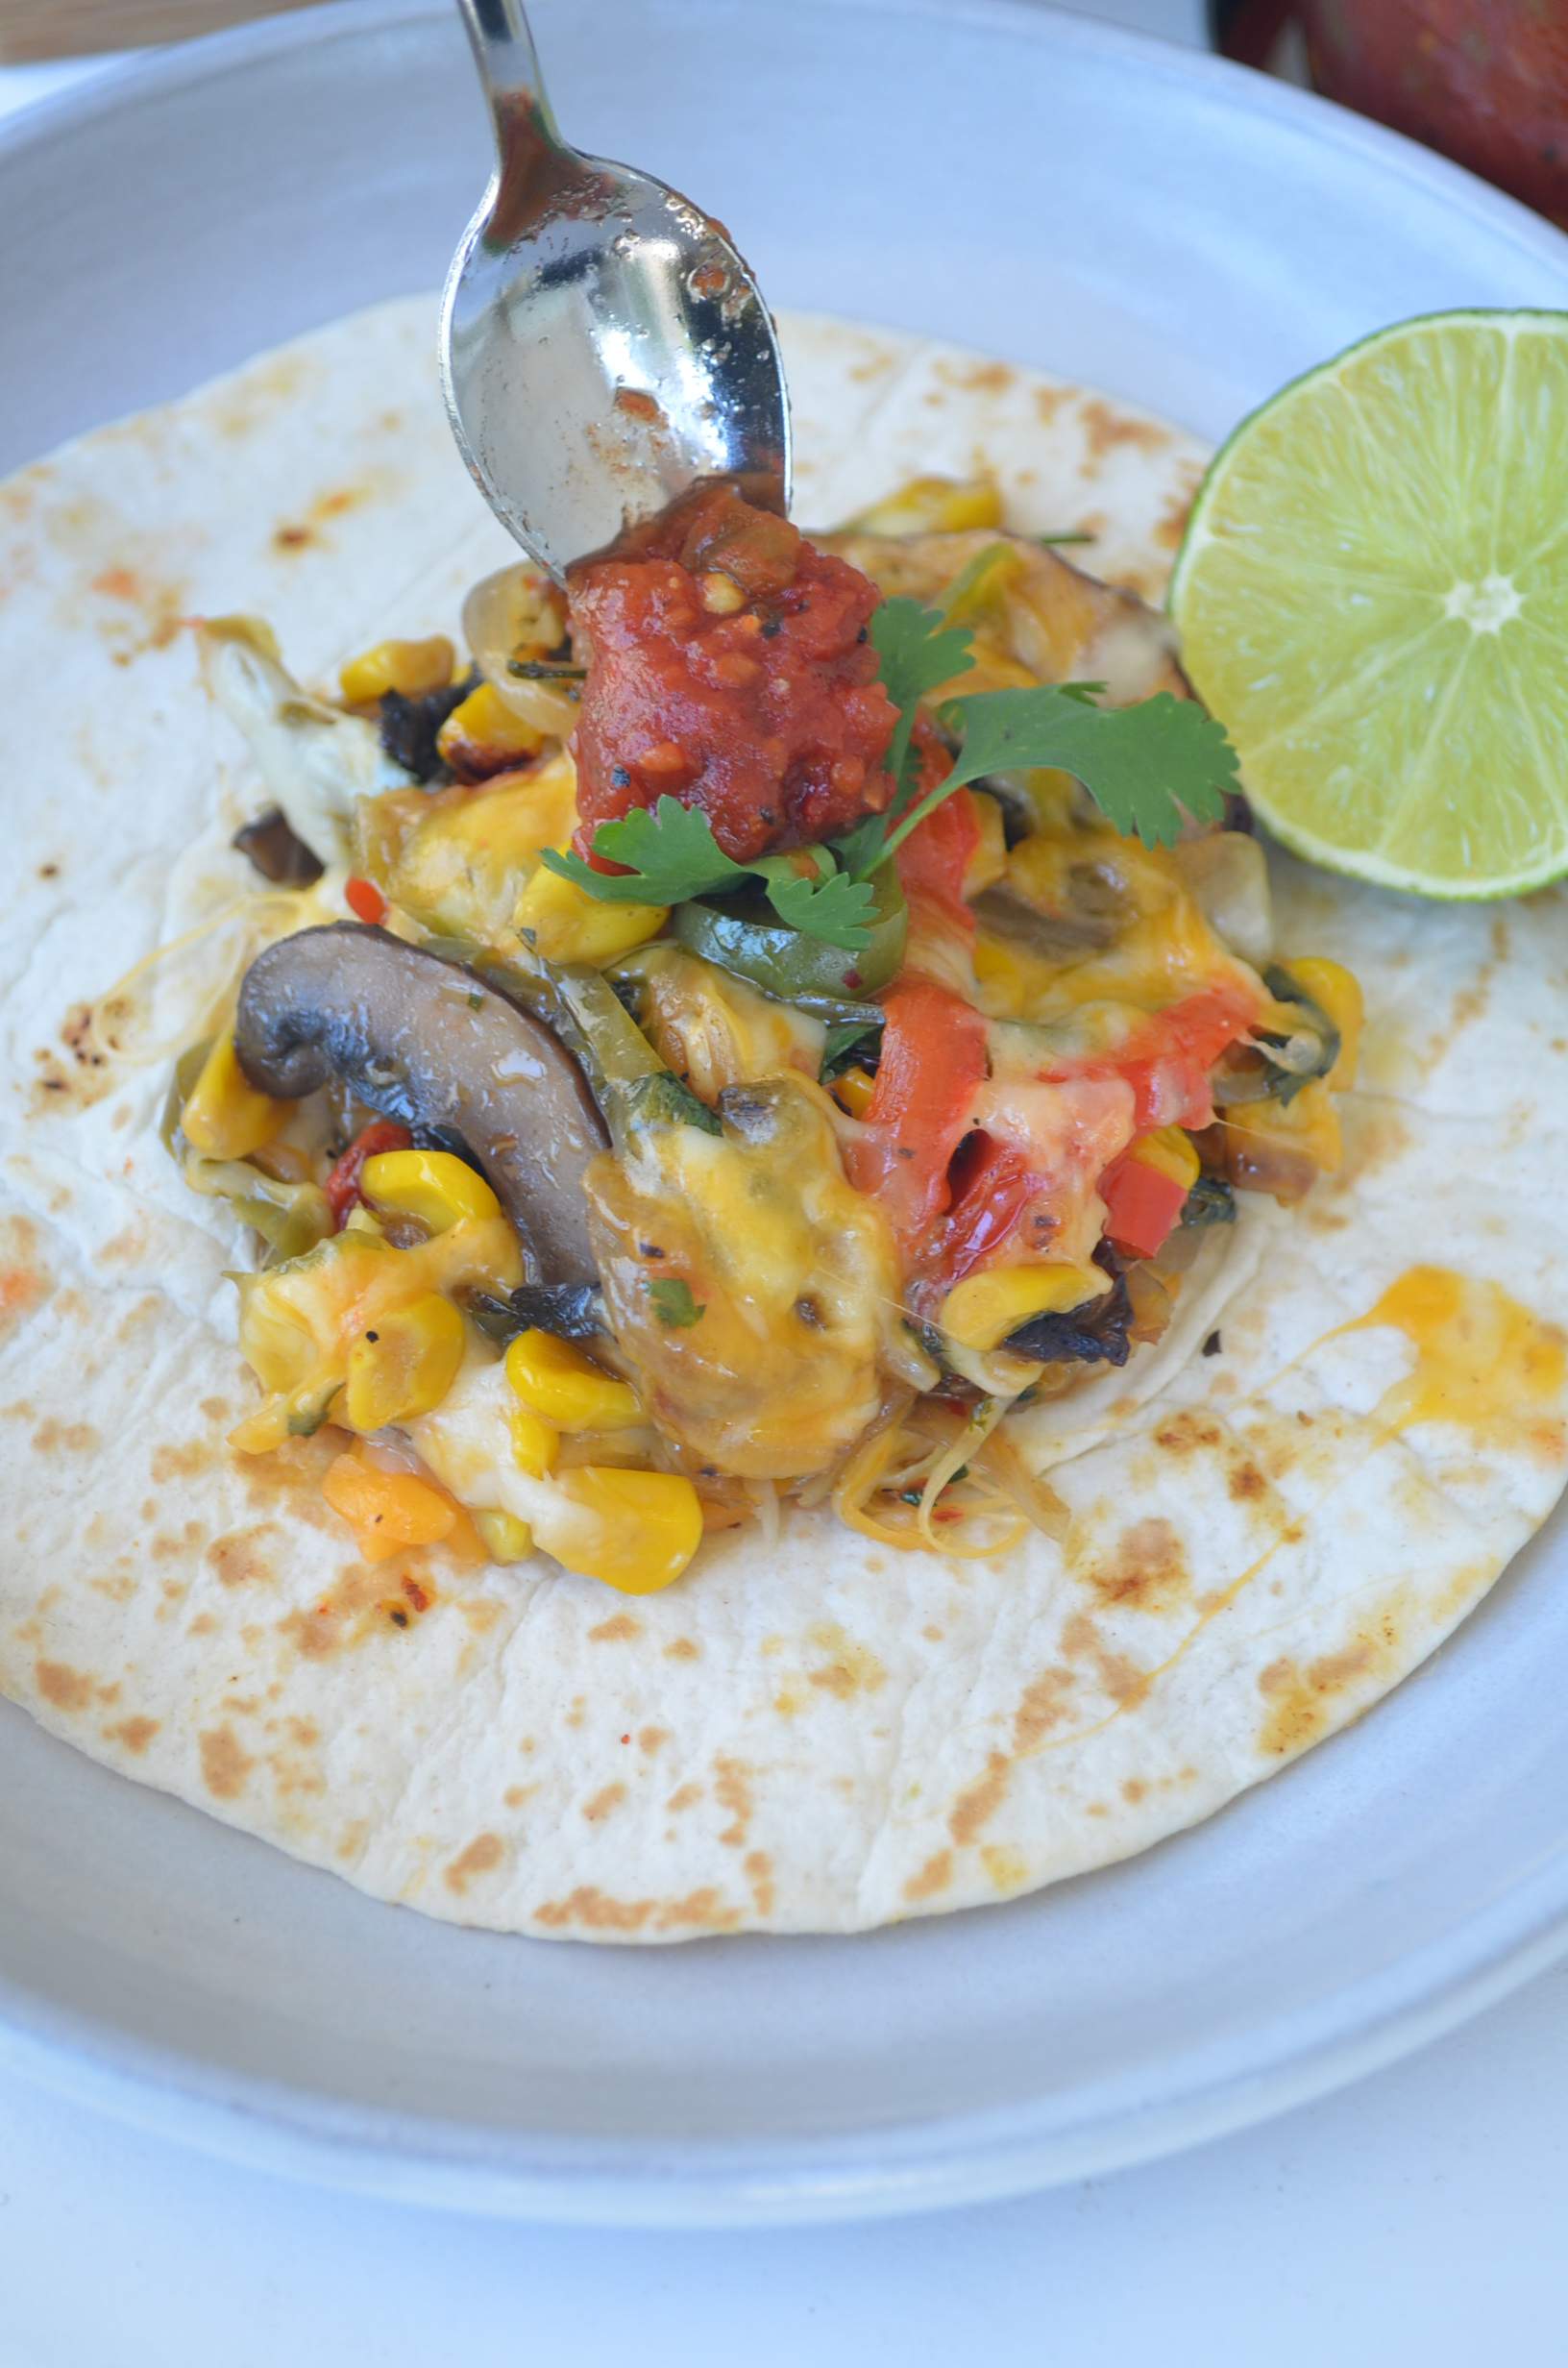 Vegetarian Fajita with Mushroom and Peppers